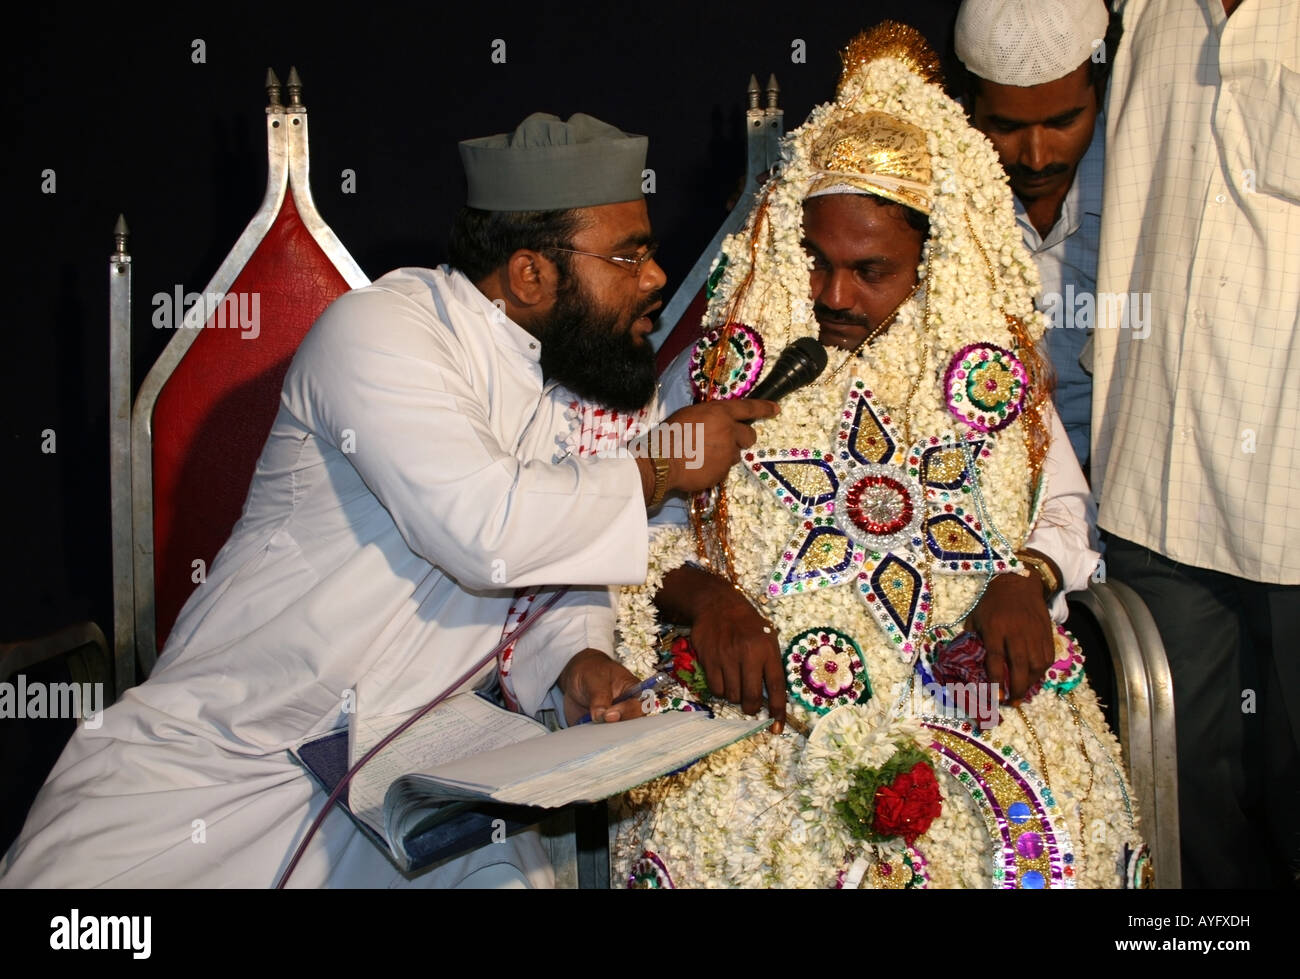 Muslim Marriage Stock Photos & Muslim Marriage Stock Images